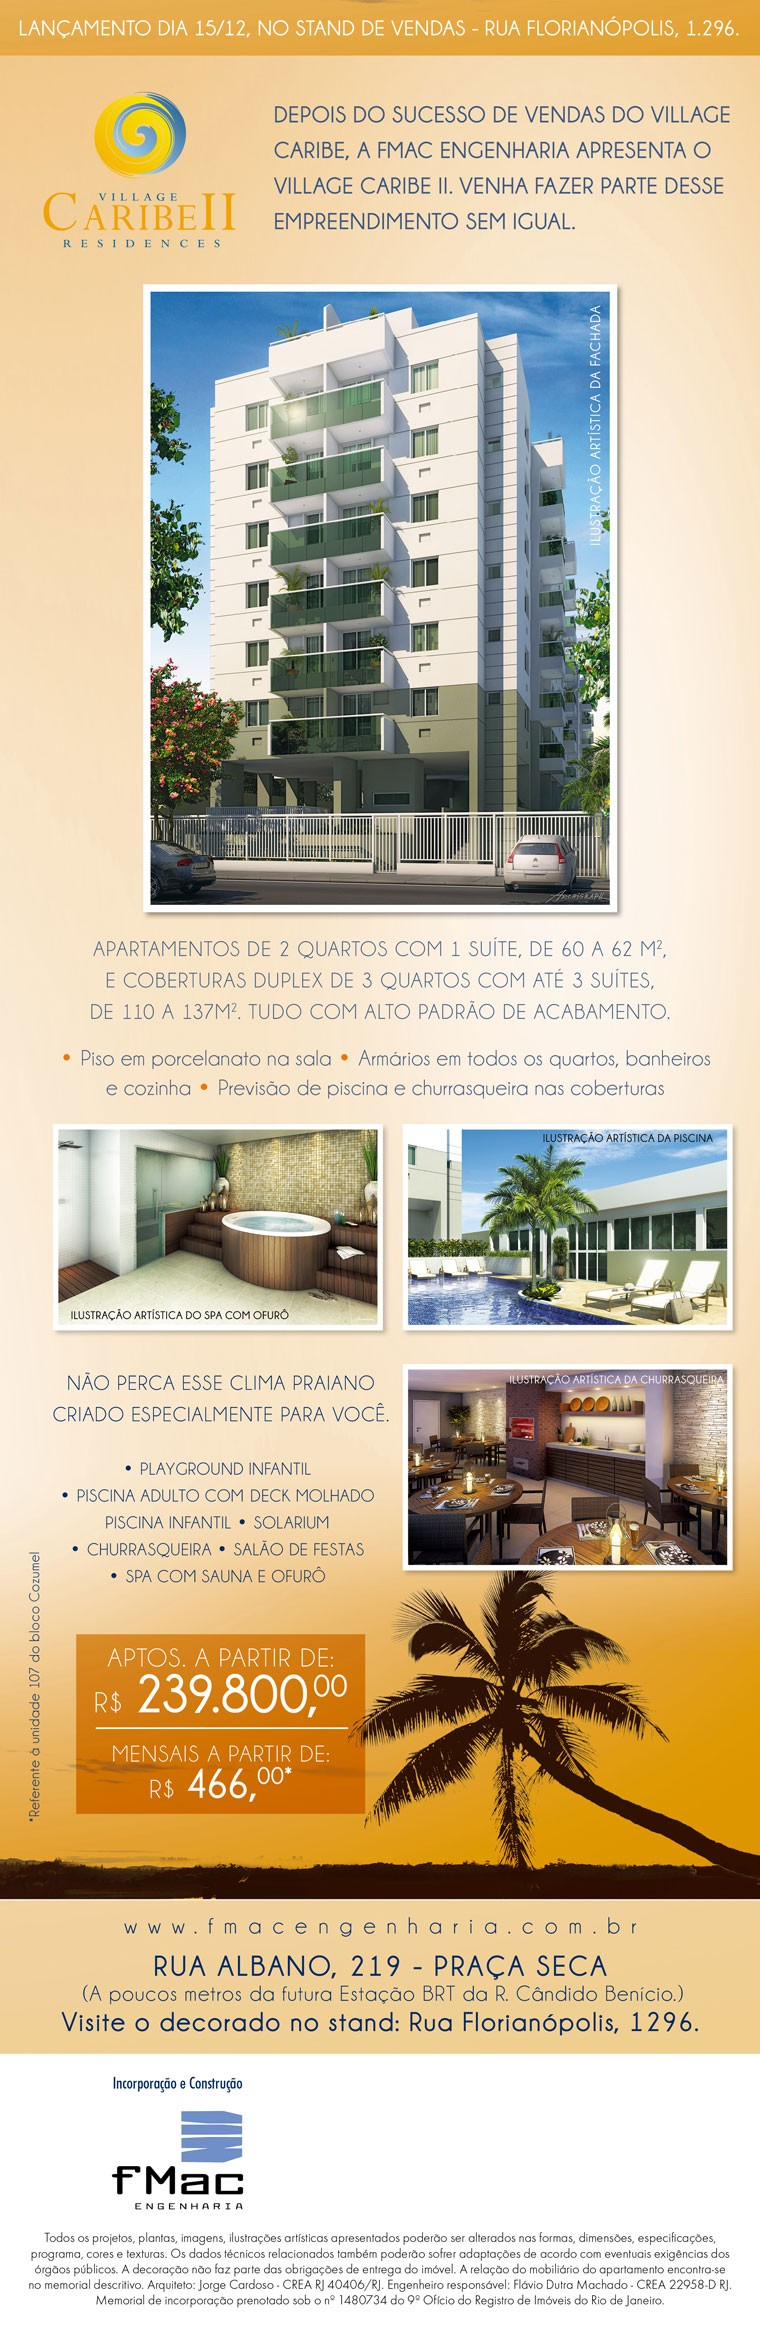 Email Marketing - Village Caribe 2